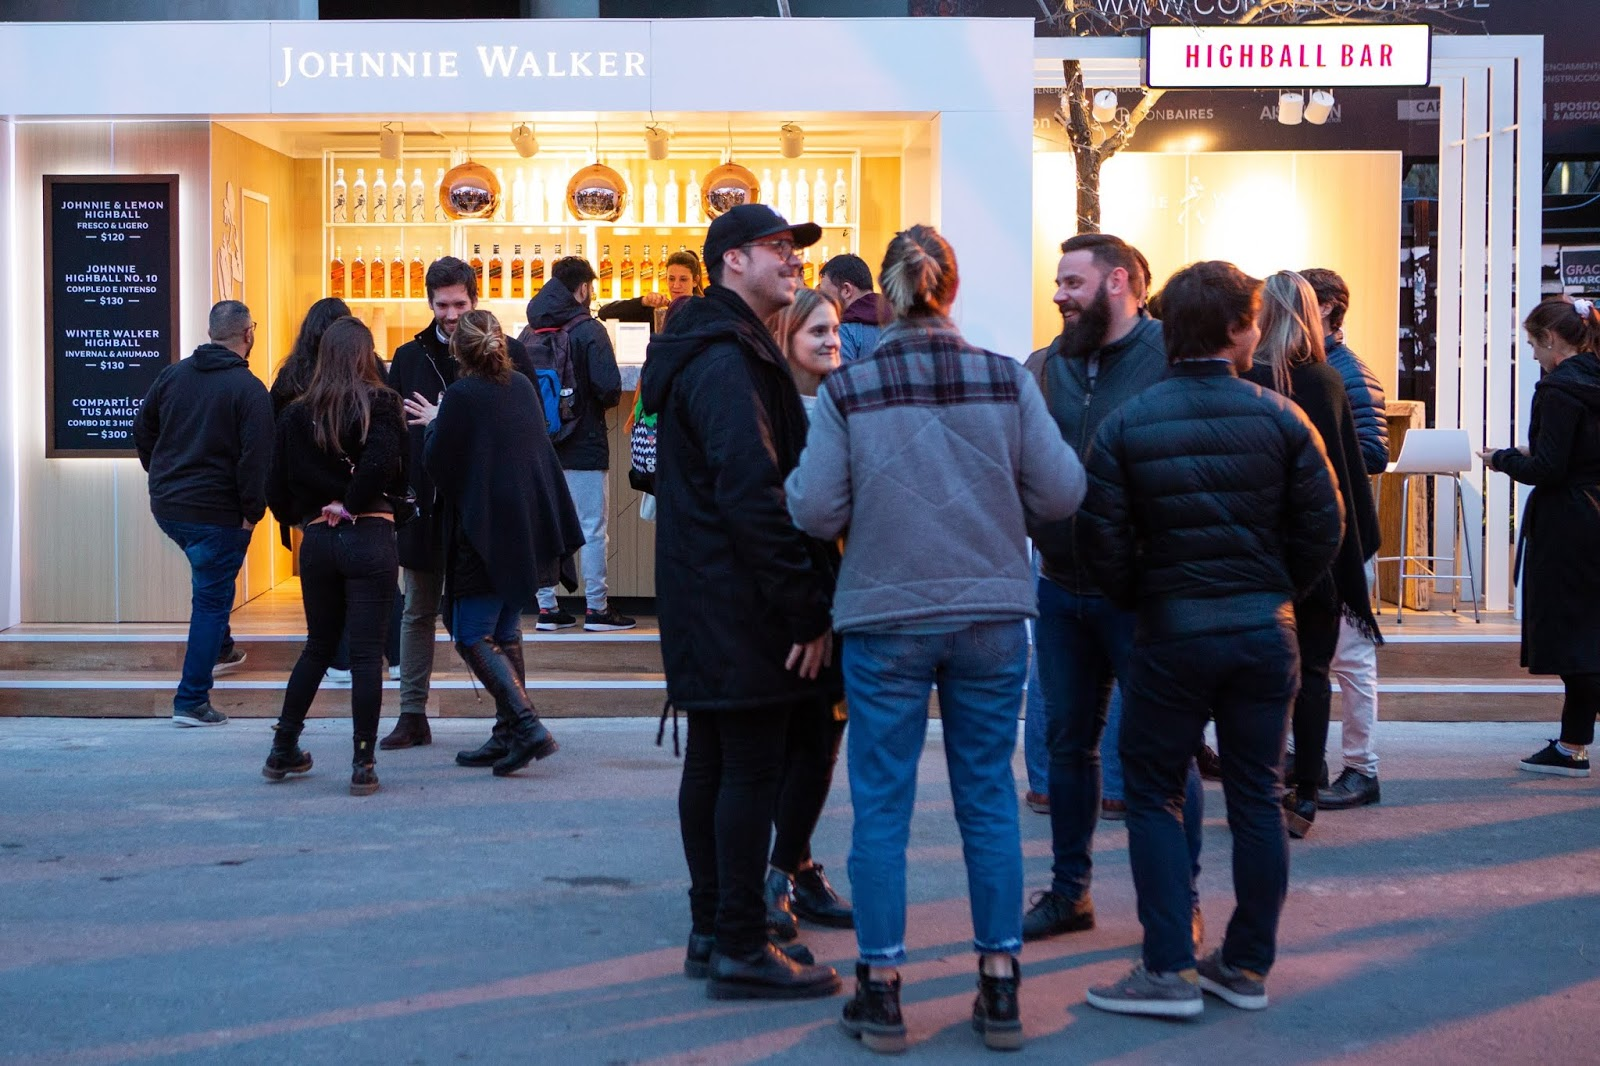 Johnnie Walker presenta su Highball Bar en Masticar #JohnnieHighball